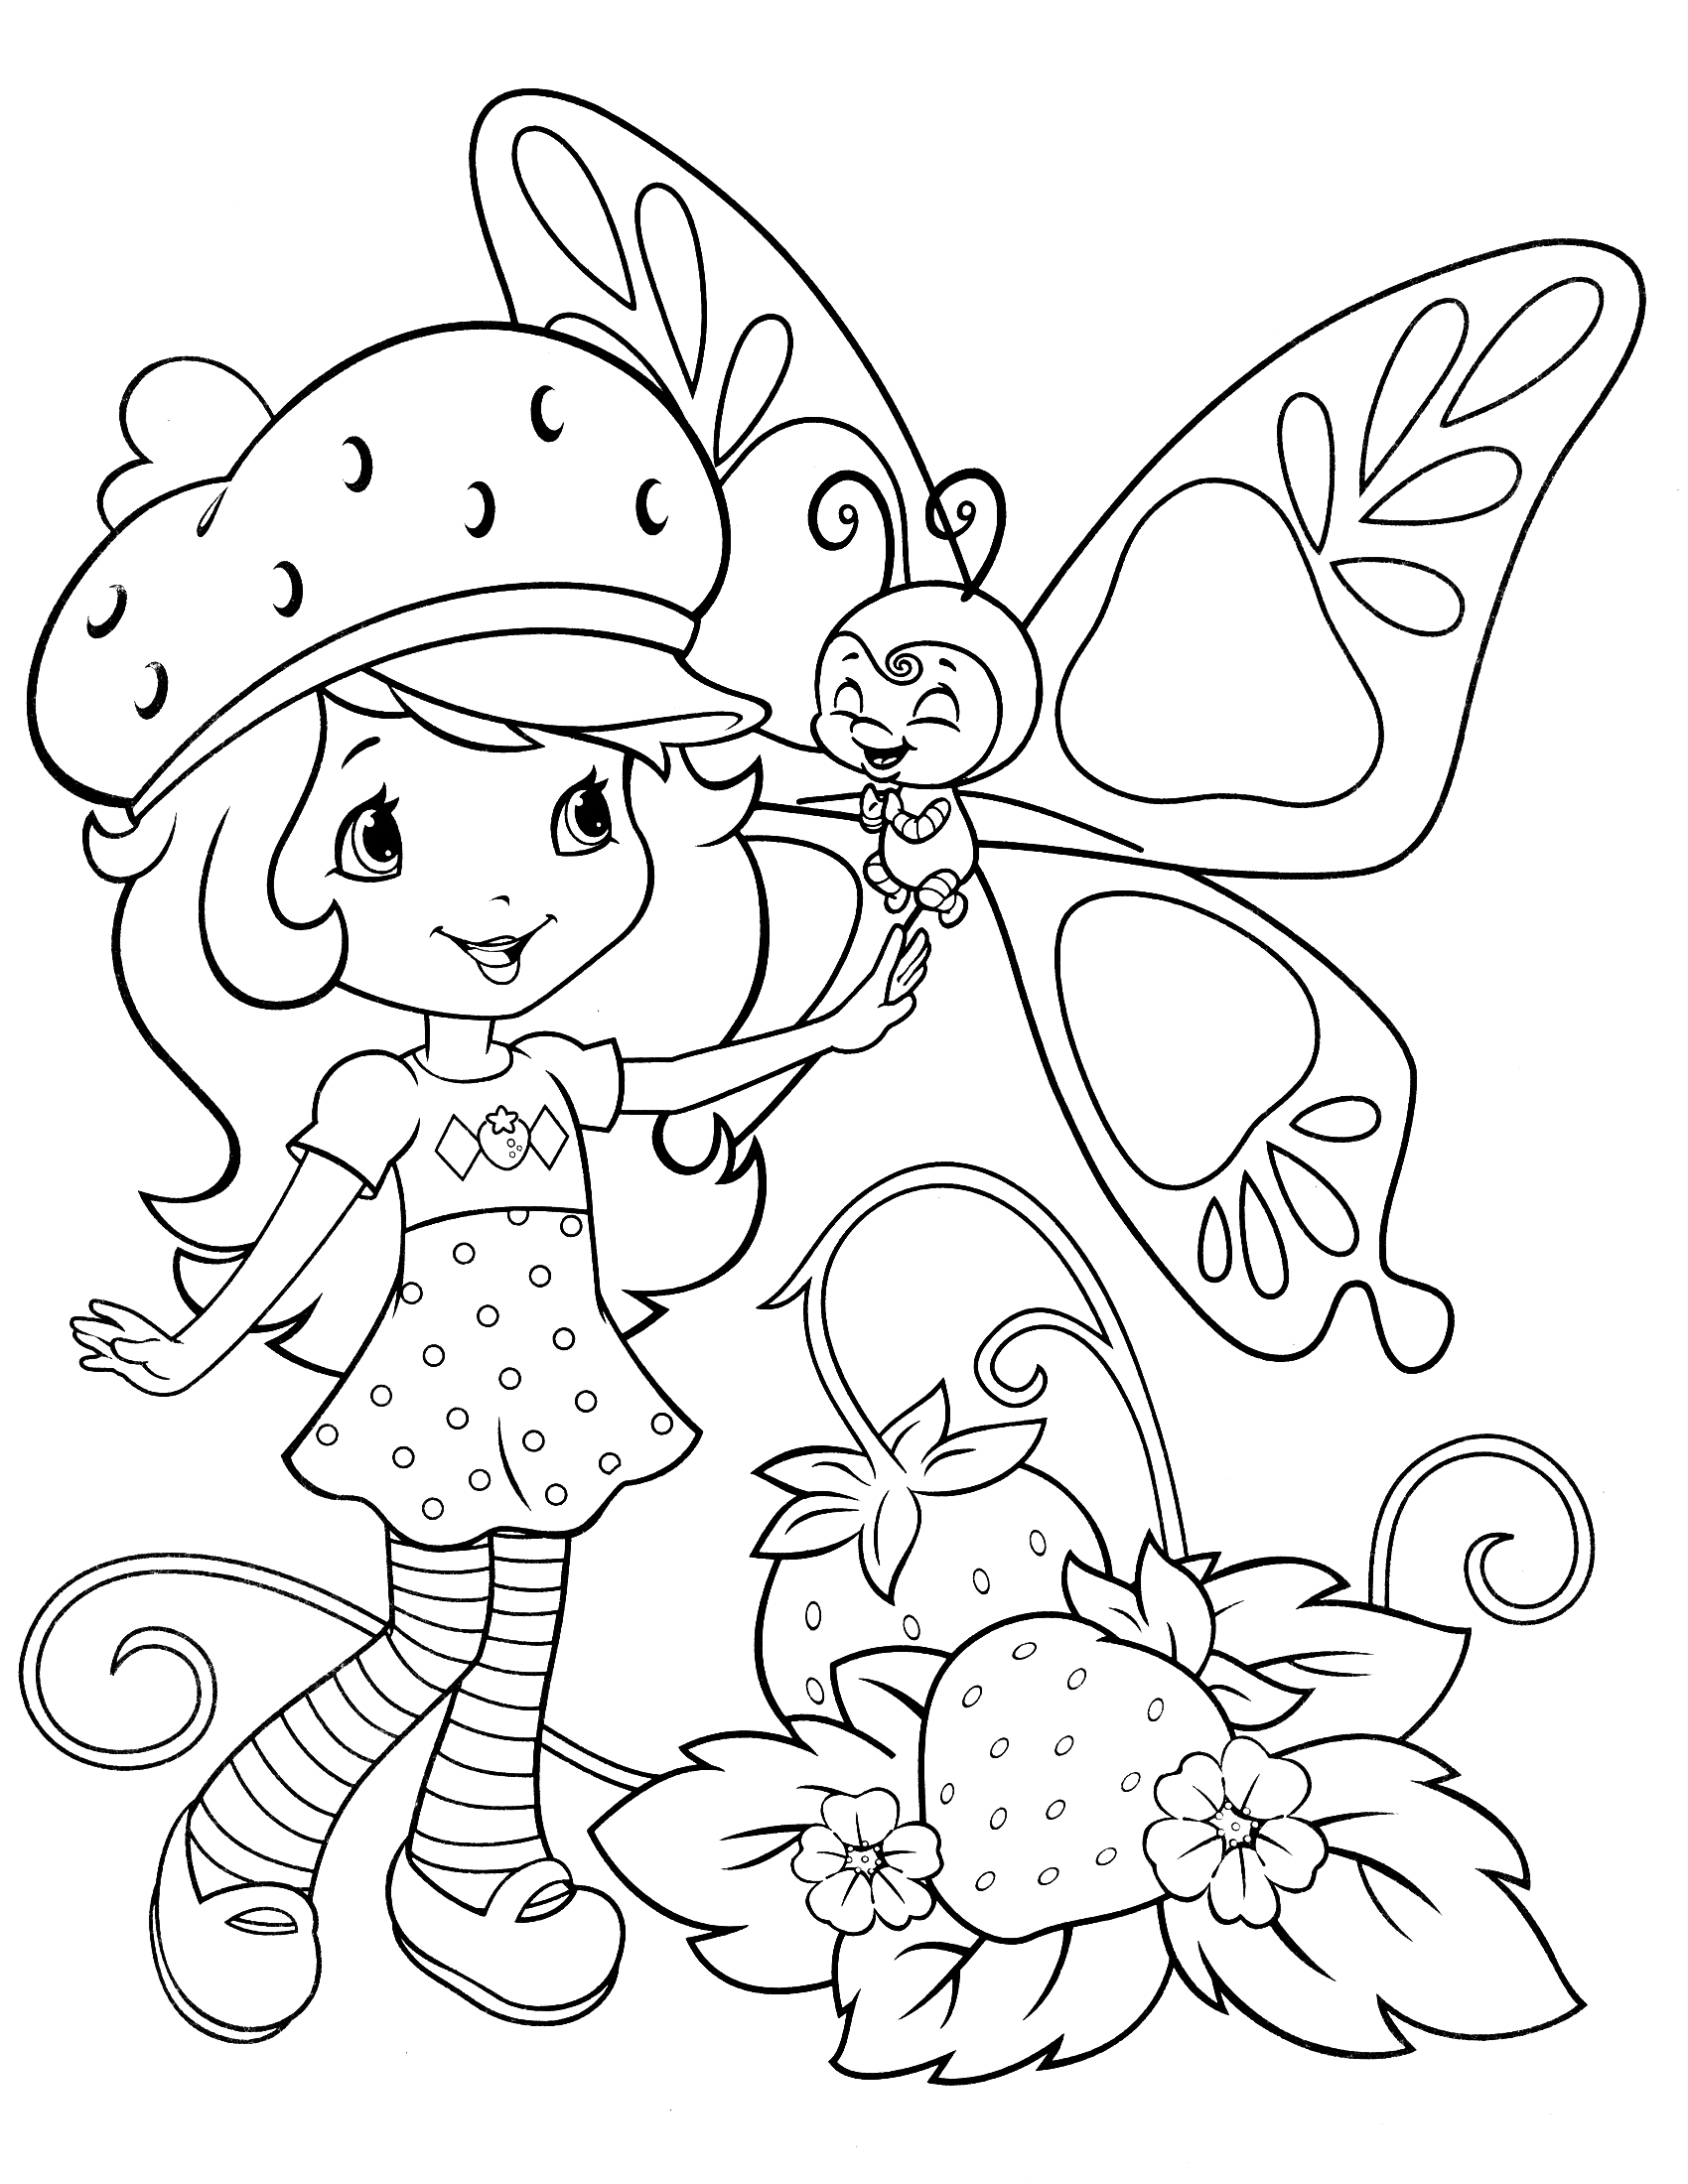 Printable Strawberry Shortcake Coloring Pages Coloring Me Coloring Pages To Print Free